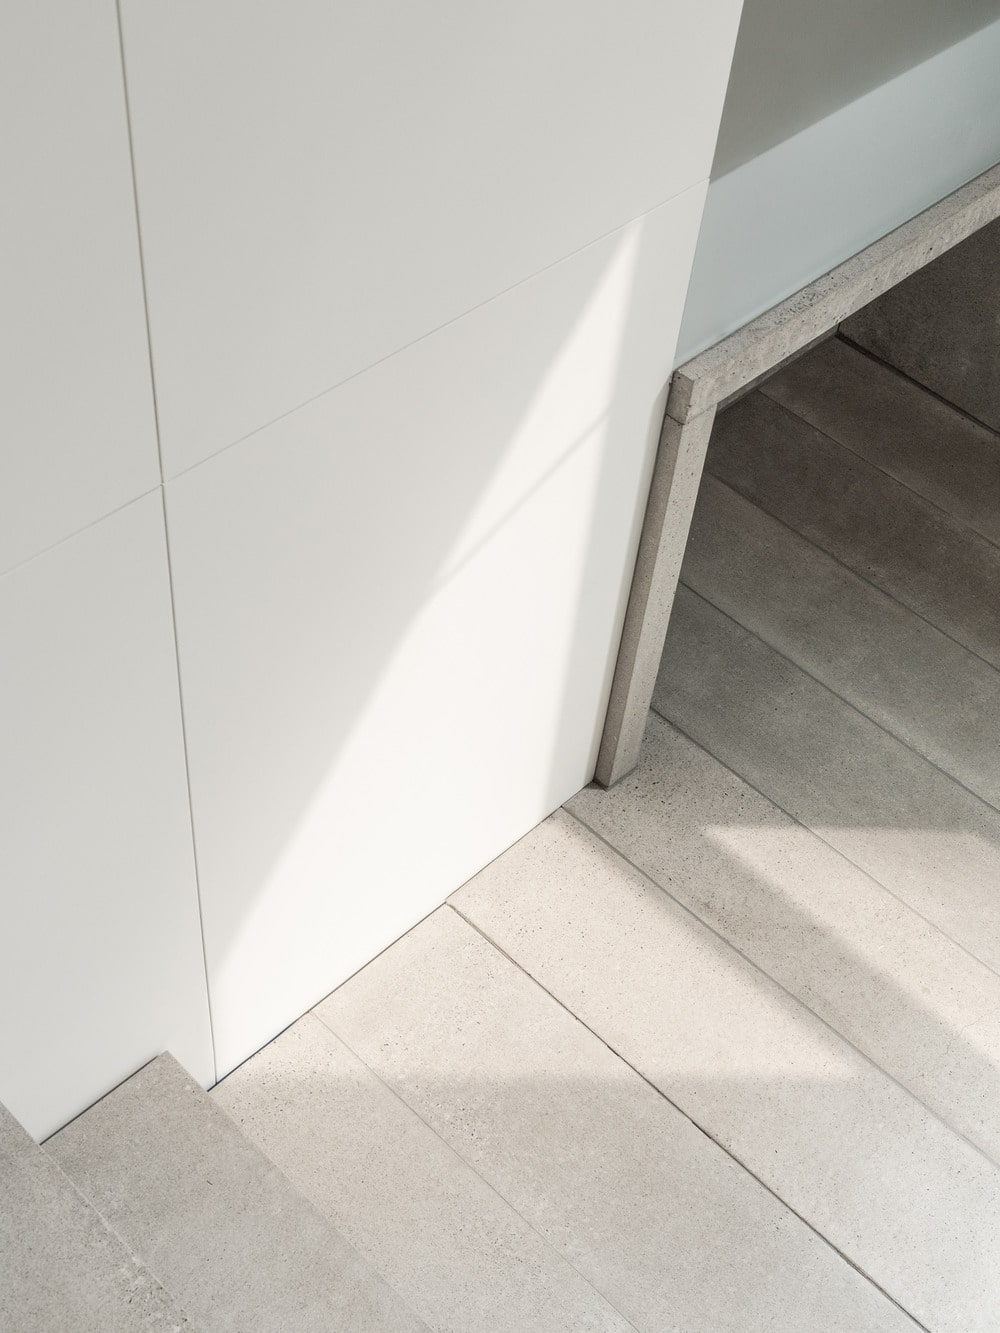 This provides a small alcove at the foot of the stairs that provide an area for shoe storage.